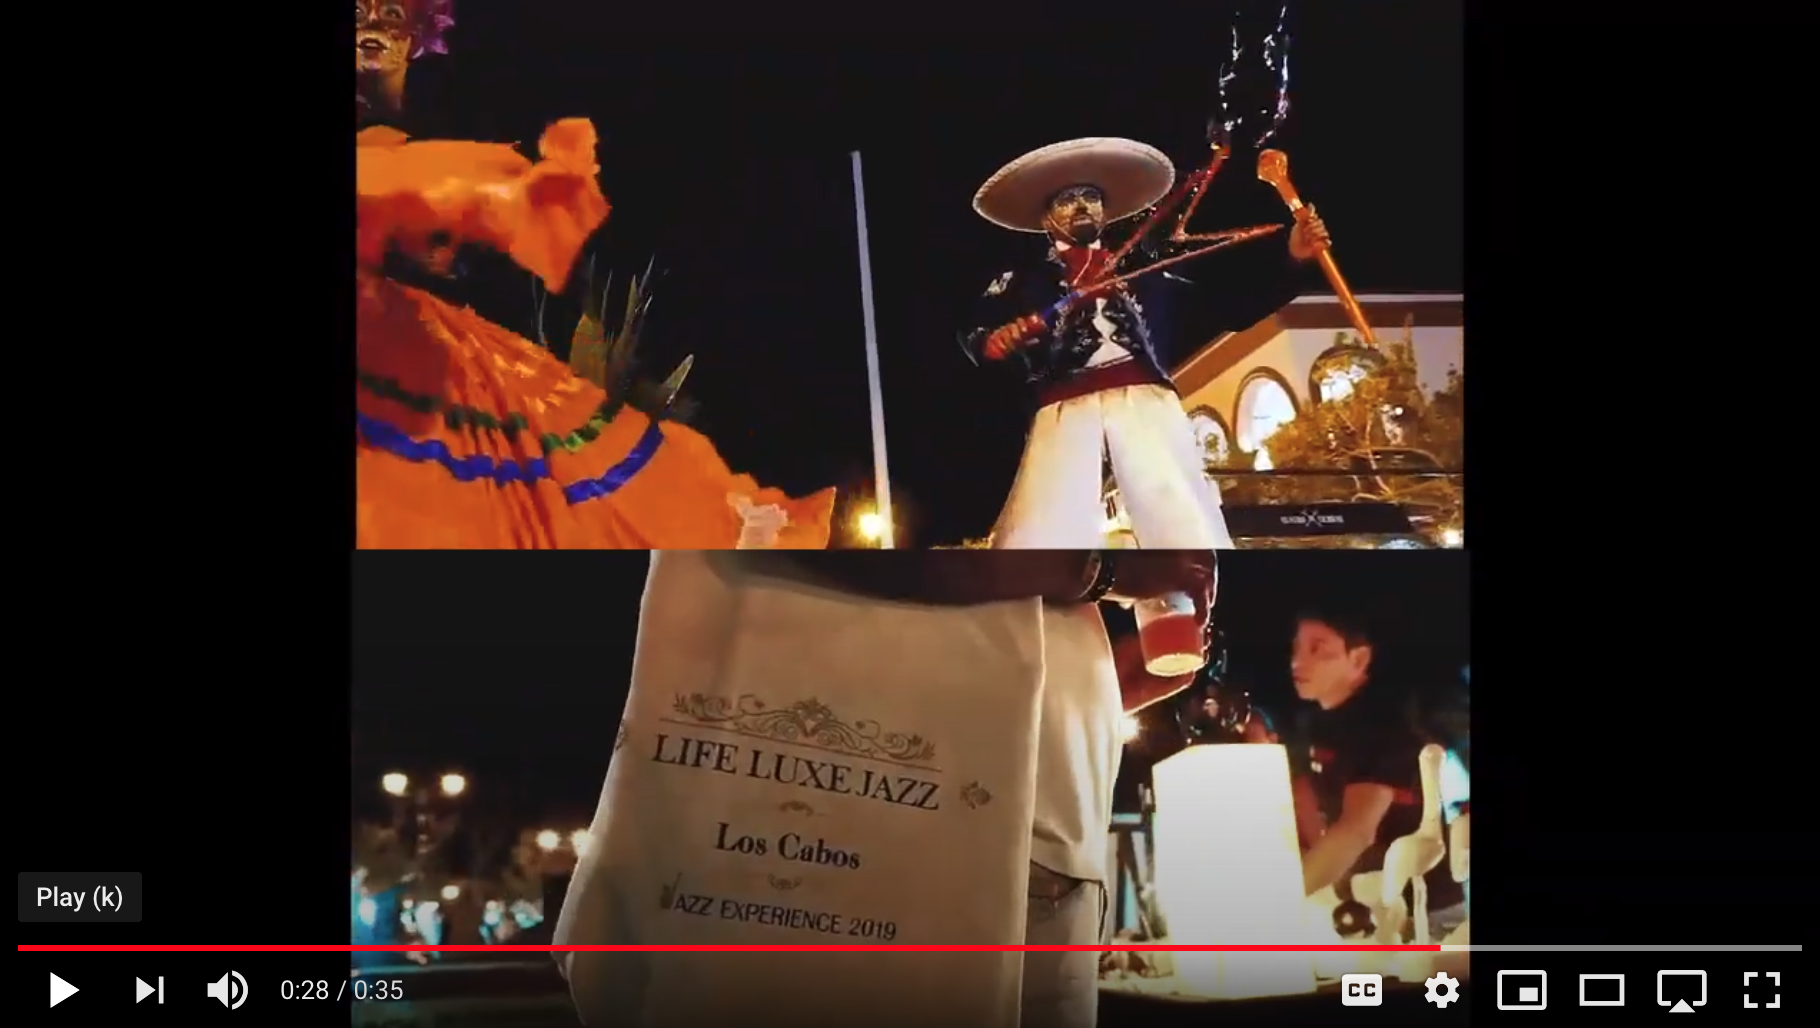 Life Luxe Jazz - The Los Cabos Jazz Experience